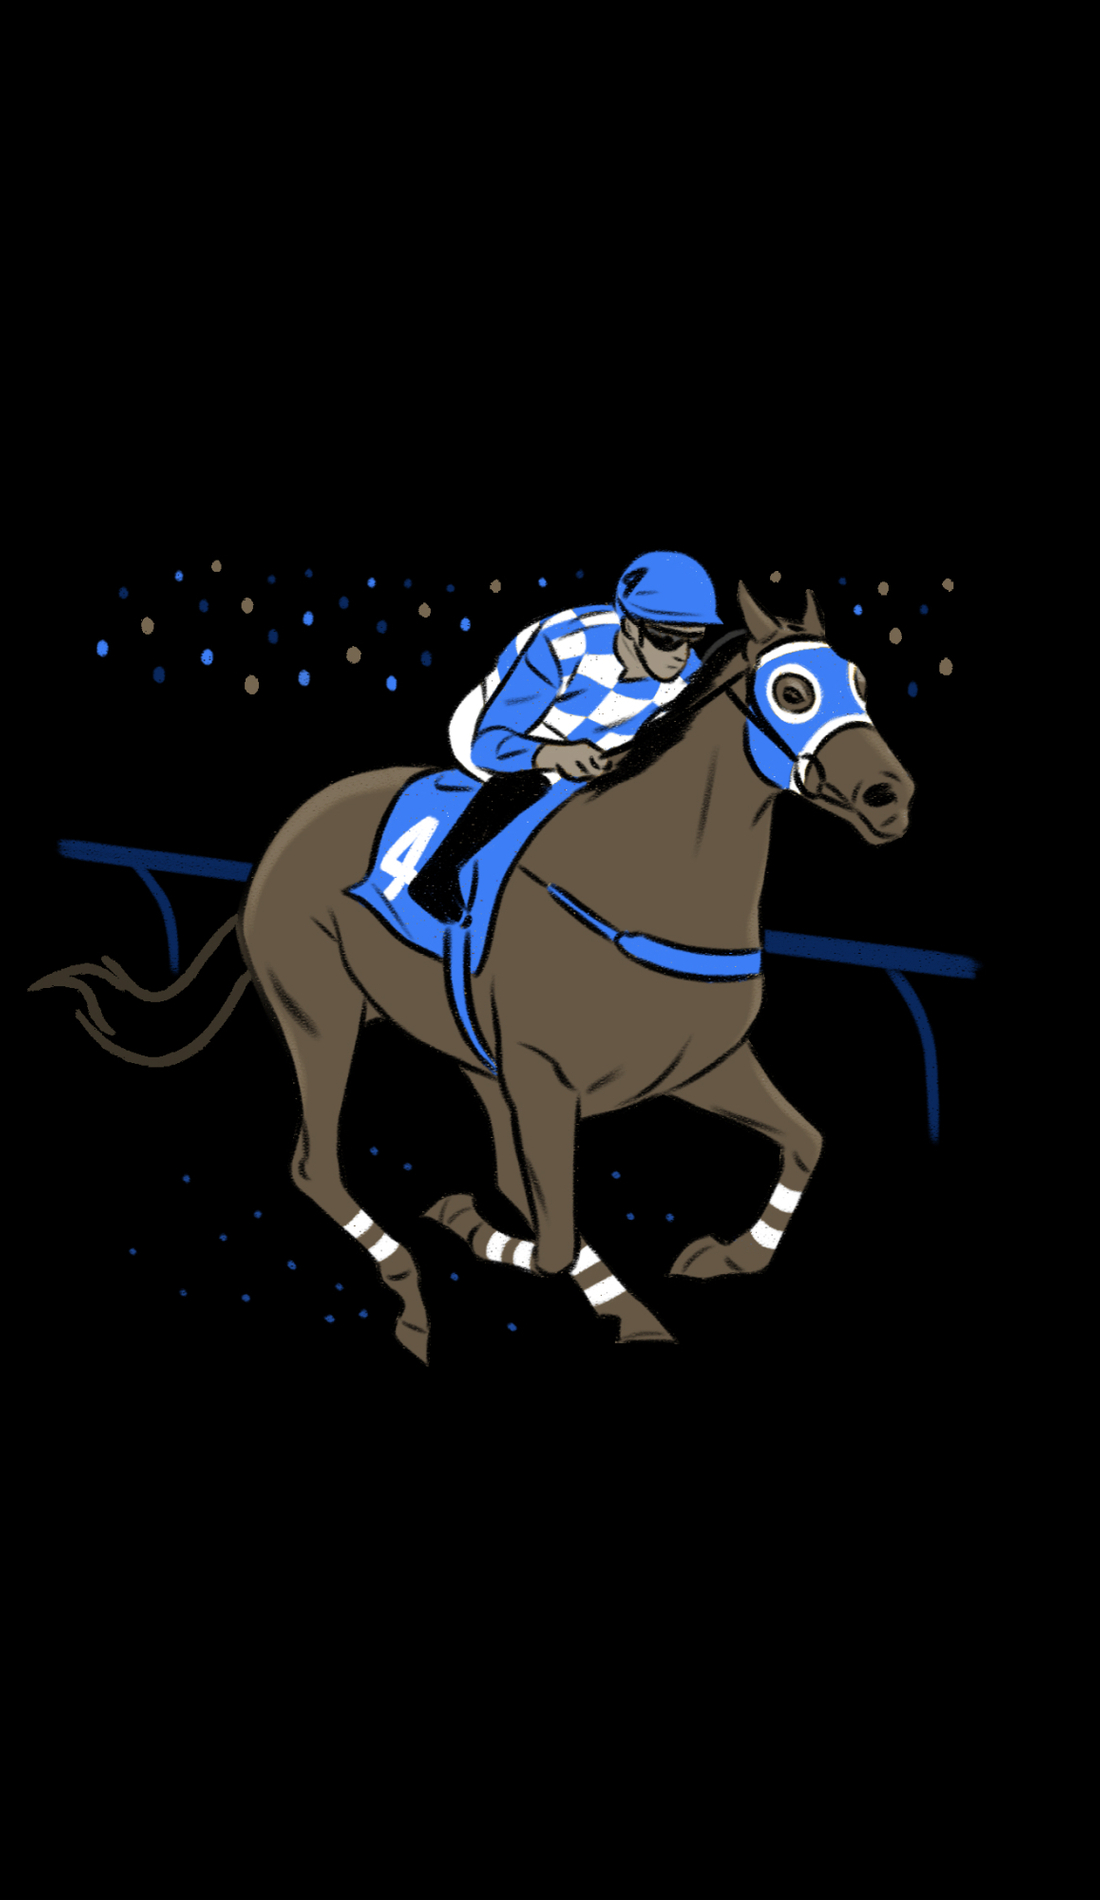 A Preakness Stakes live event